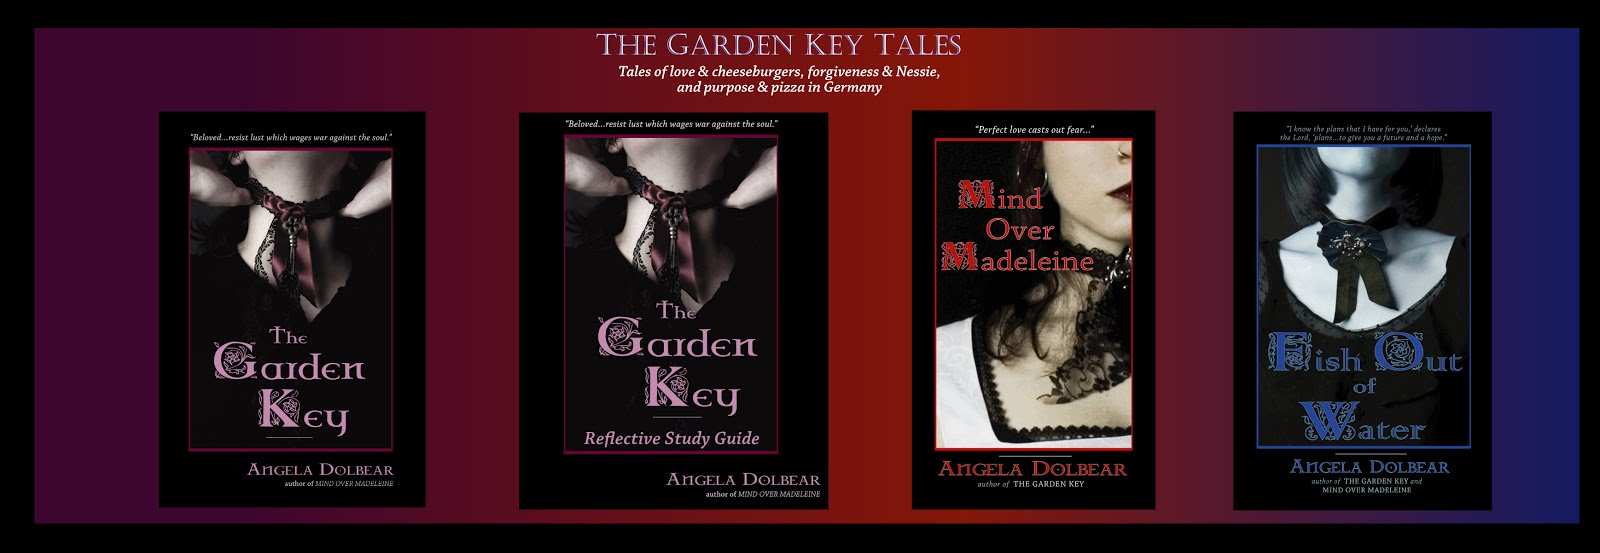 The Garden Key Tales by Angela Dolbear